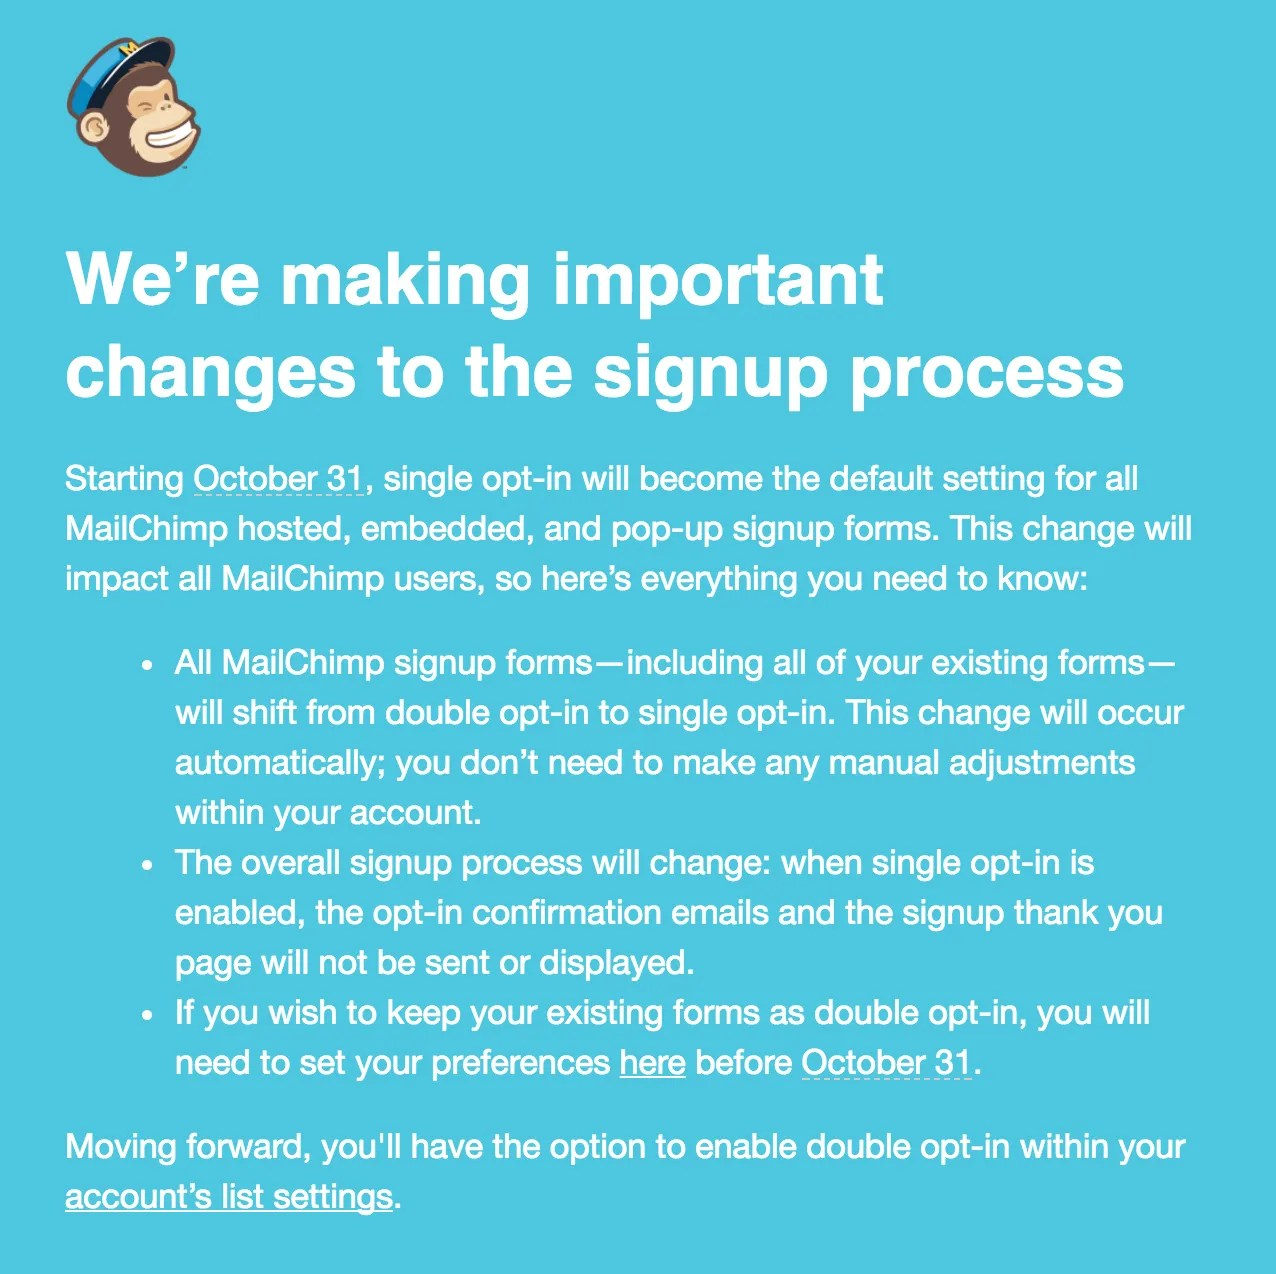 Full message from MailChimp regarding Opt-In changes.